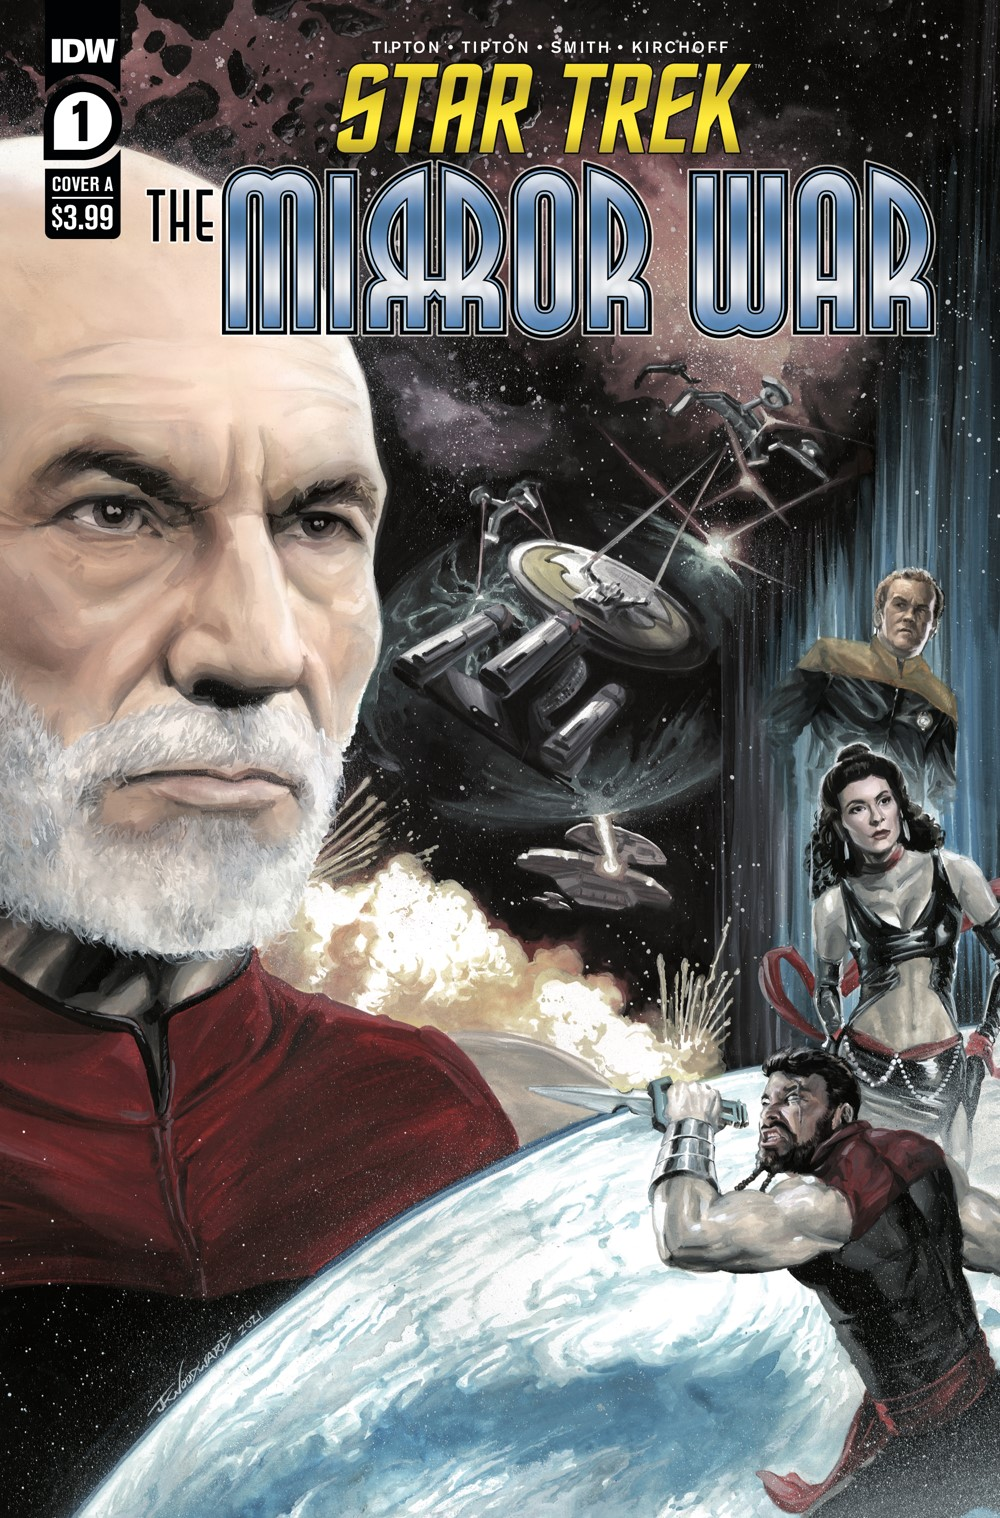 ST_TMW01-coverA ComicList: IDW Publishing New Releases for 10/13/2021